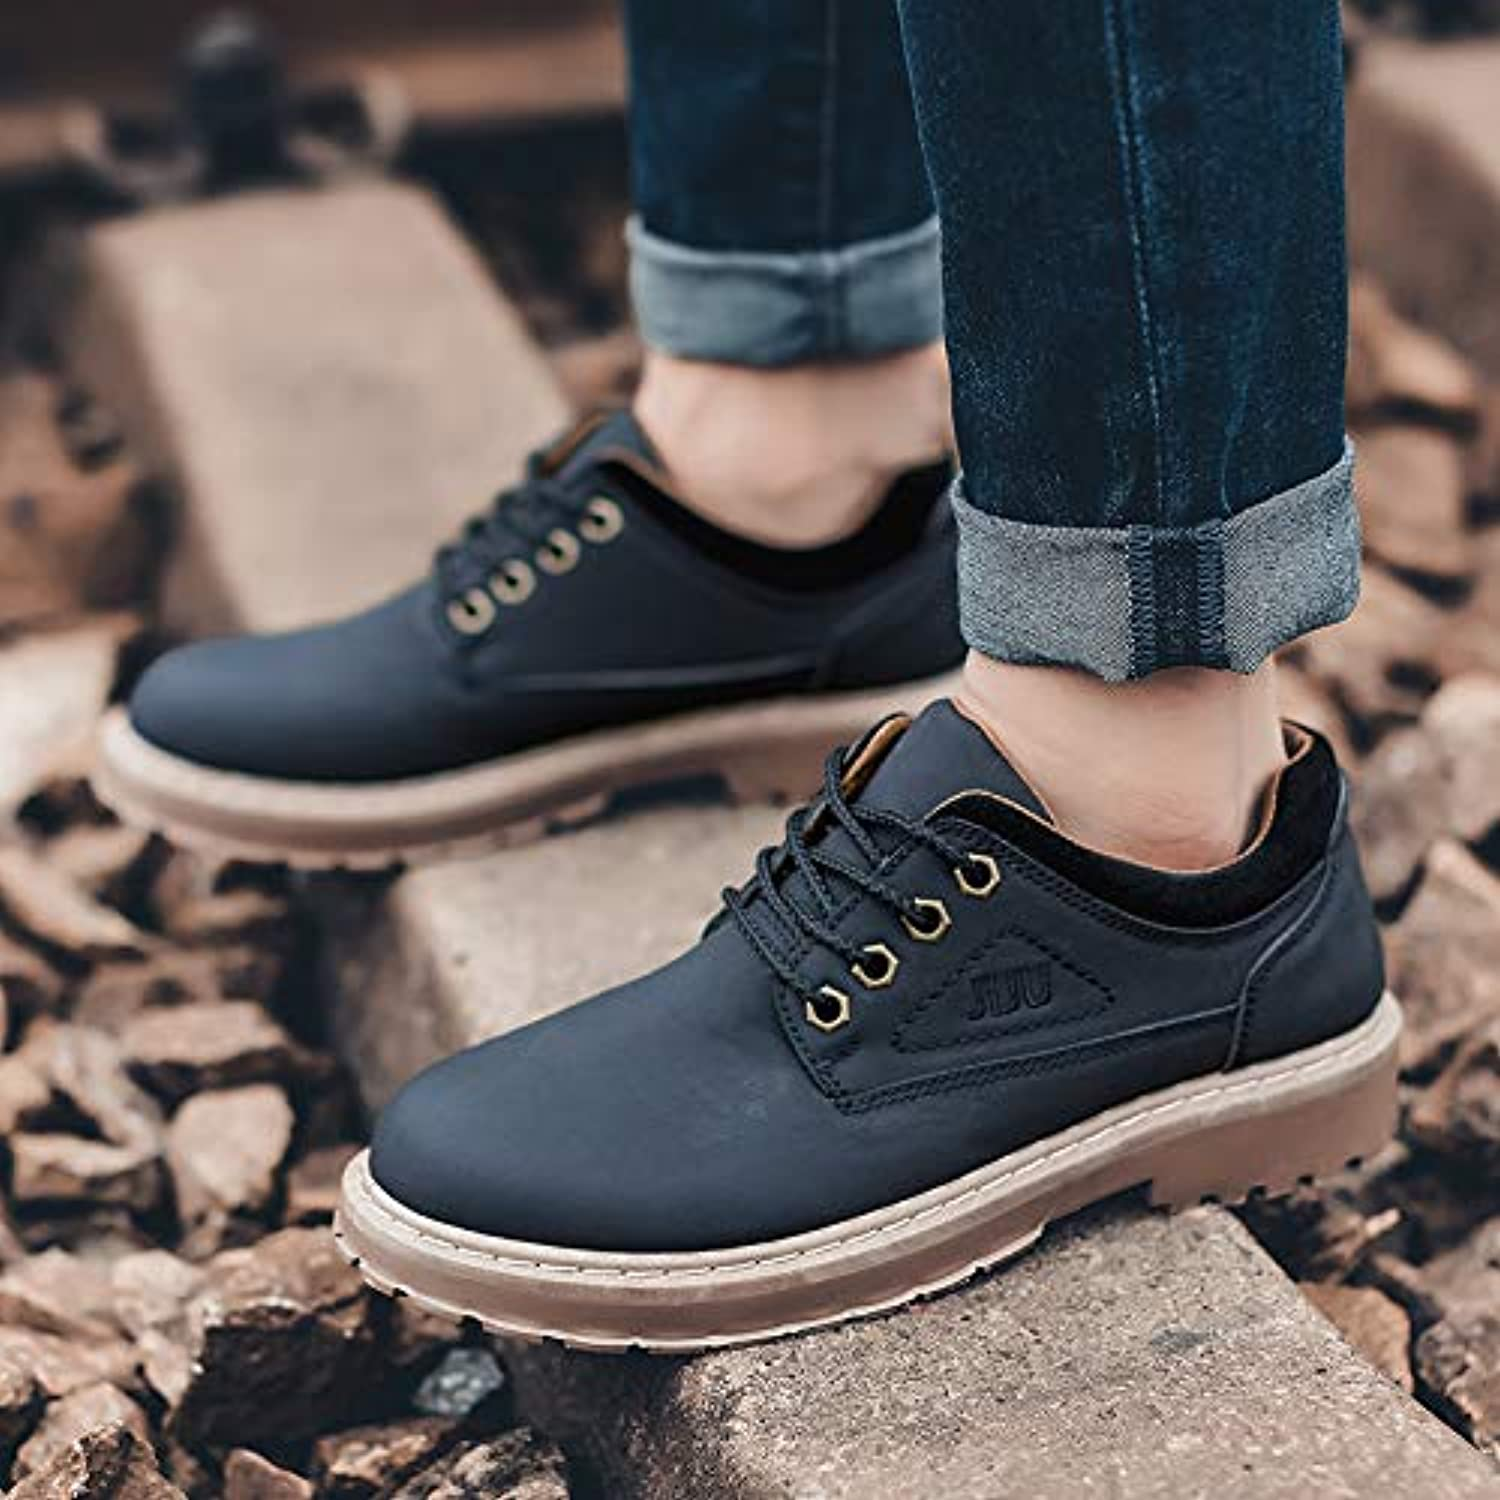 LOVDRAM Boots Men's Autumn New Short Boots Casual Men'S shoes Low To Help Martin Boots Fashion Retro Tooling shoes Men'S shoes